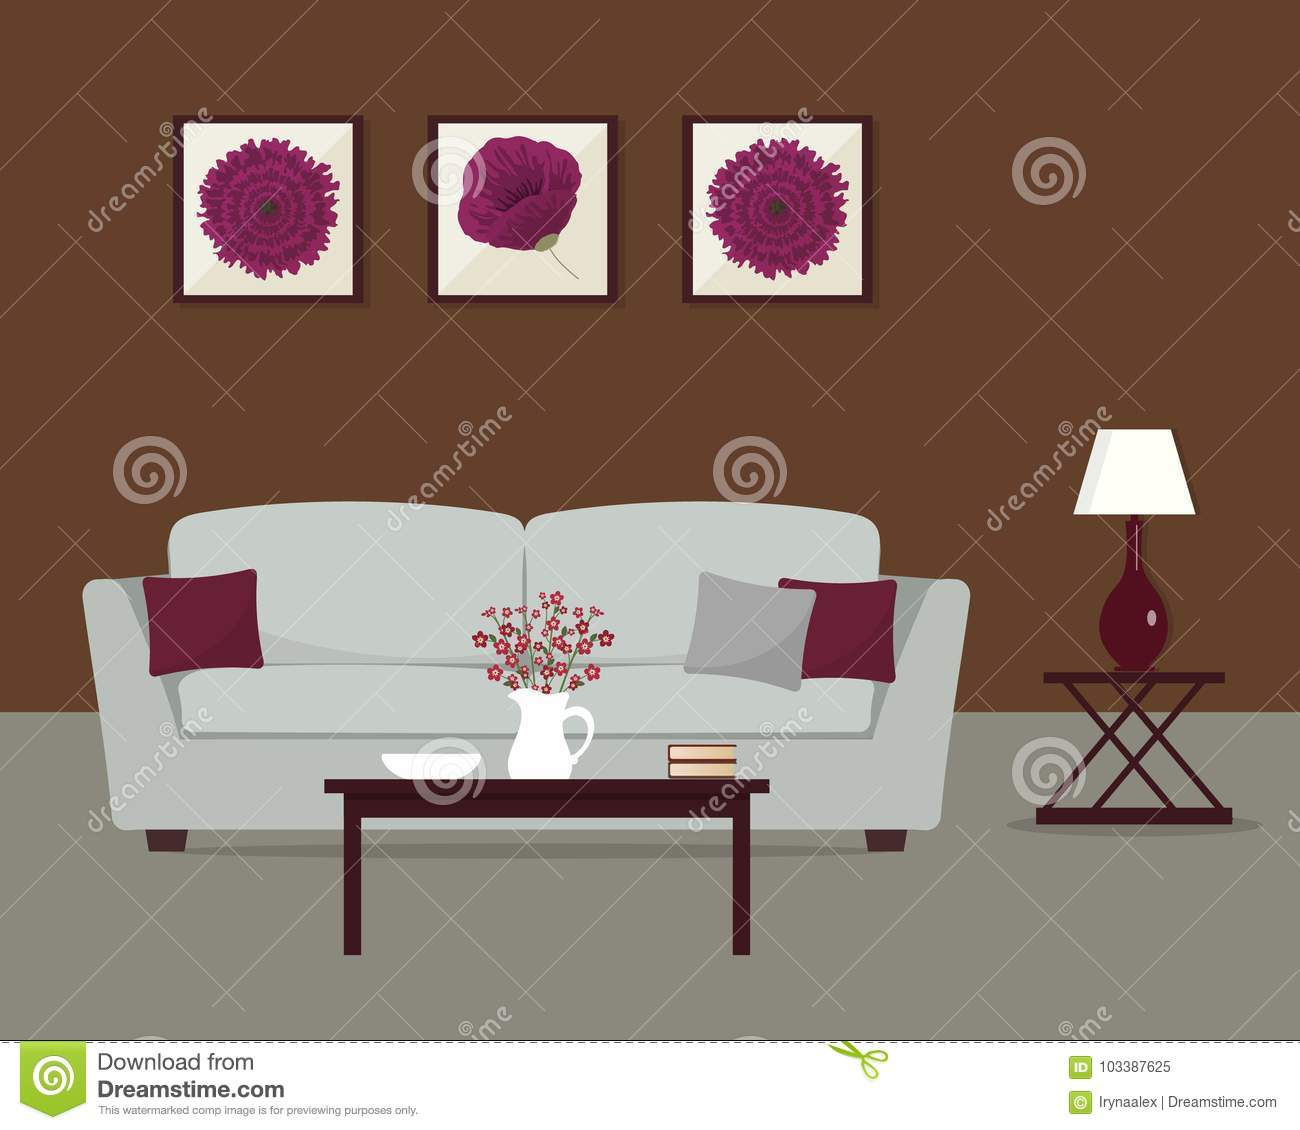 burgundy and brown living room amazon com furniture 2 in a colors stock vector